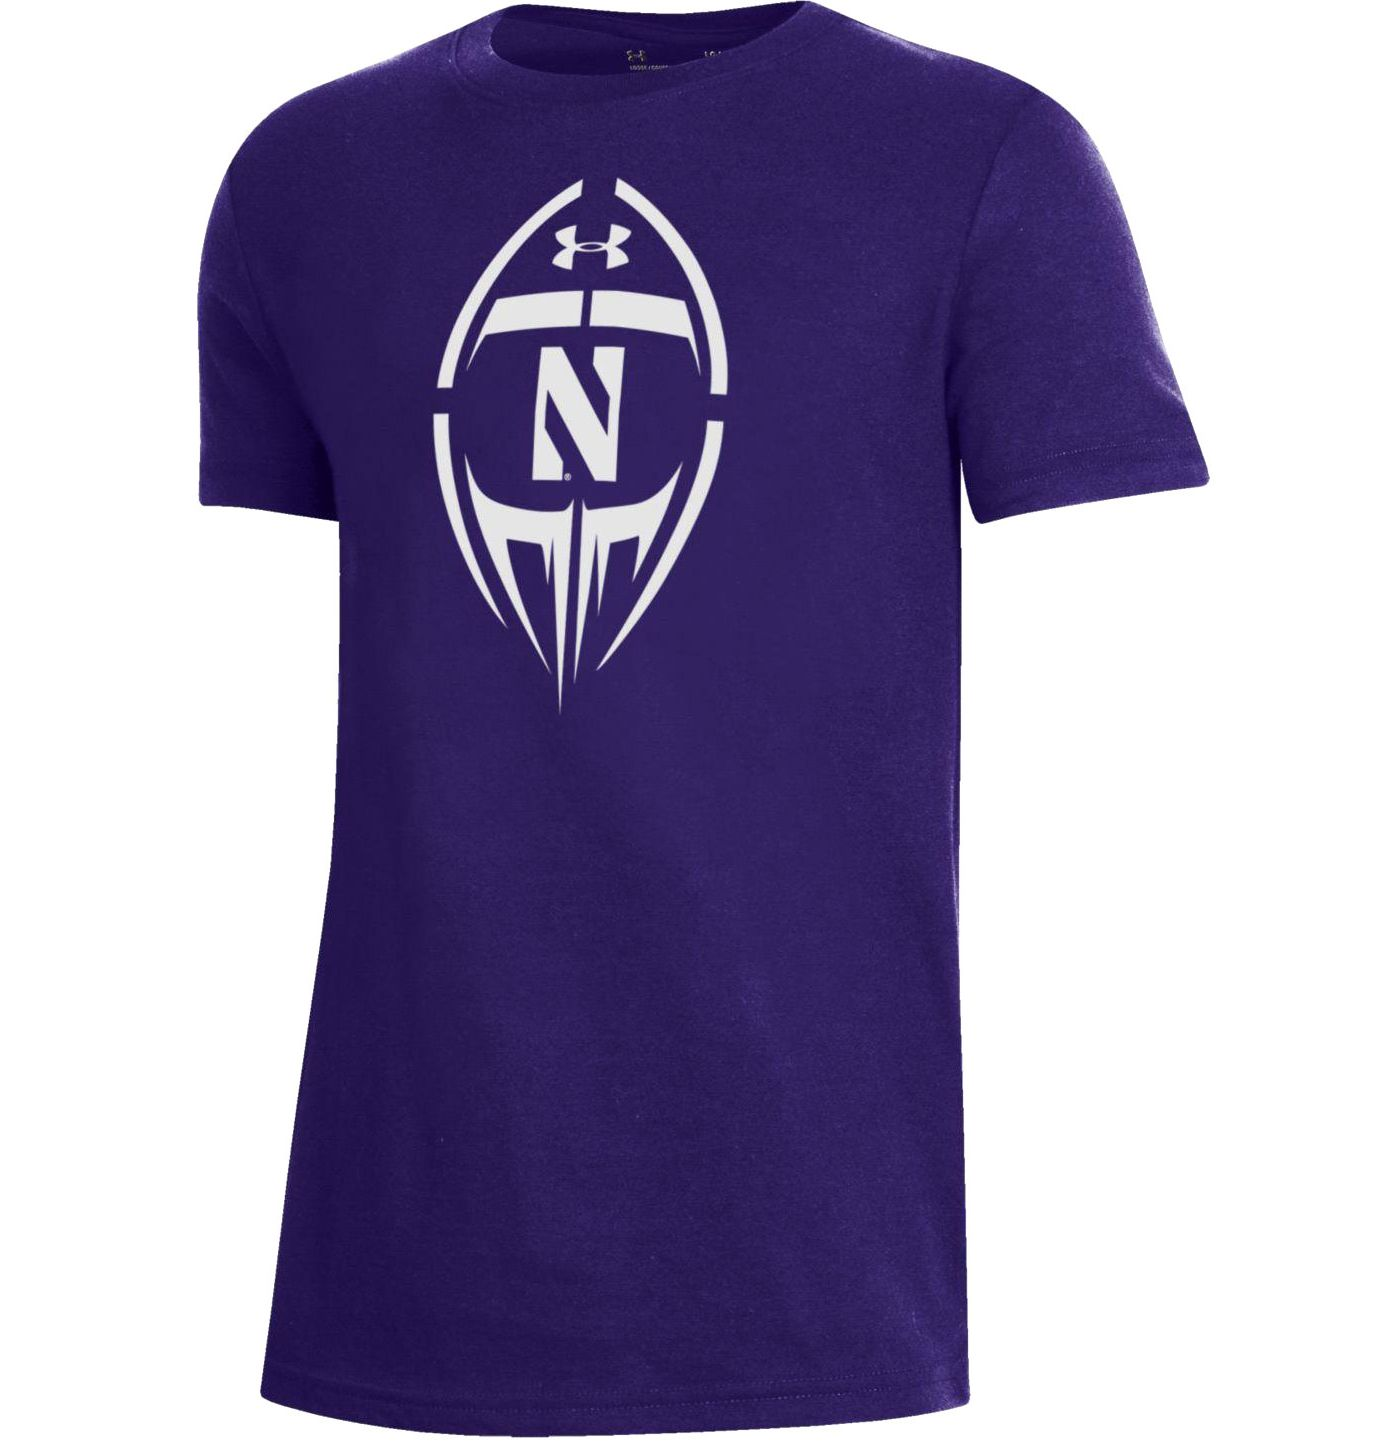 Under Armour Youth Northwestern Wildcats Purple Performance Cotton Football T-Shirt